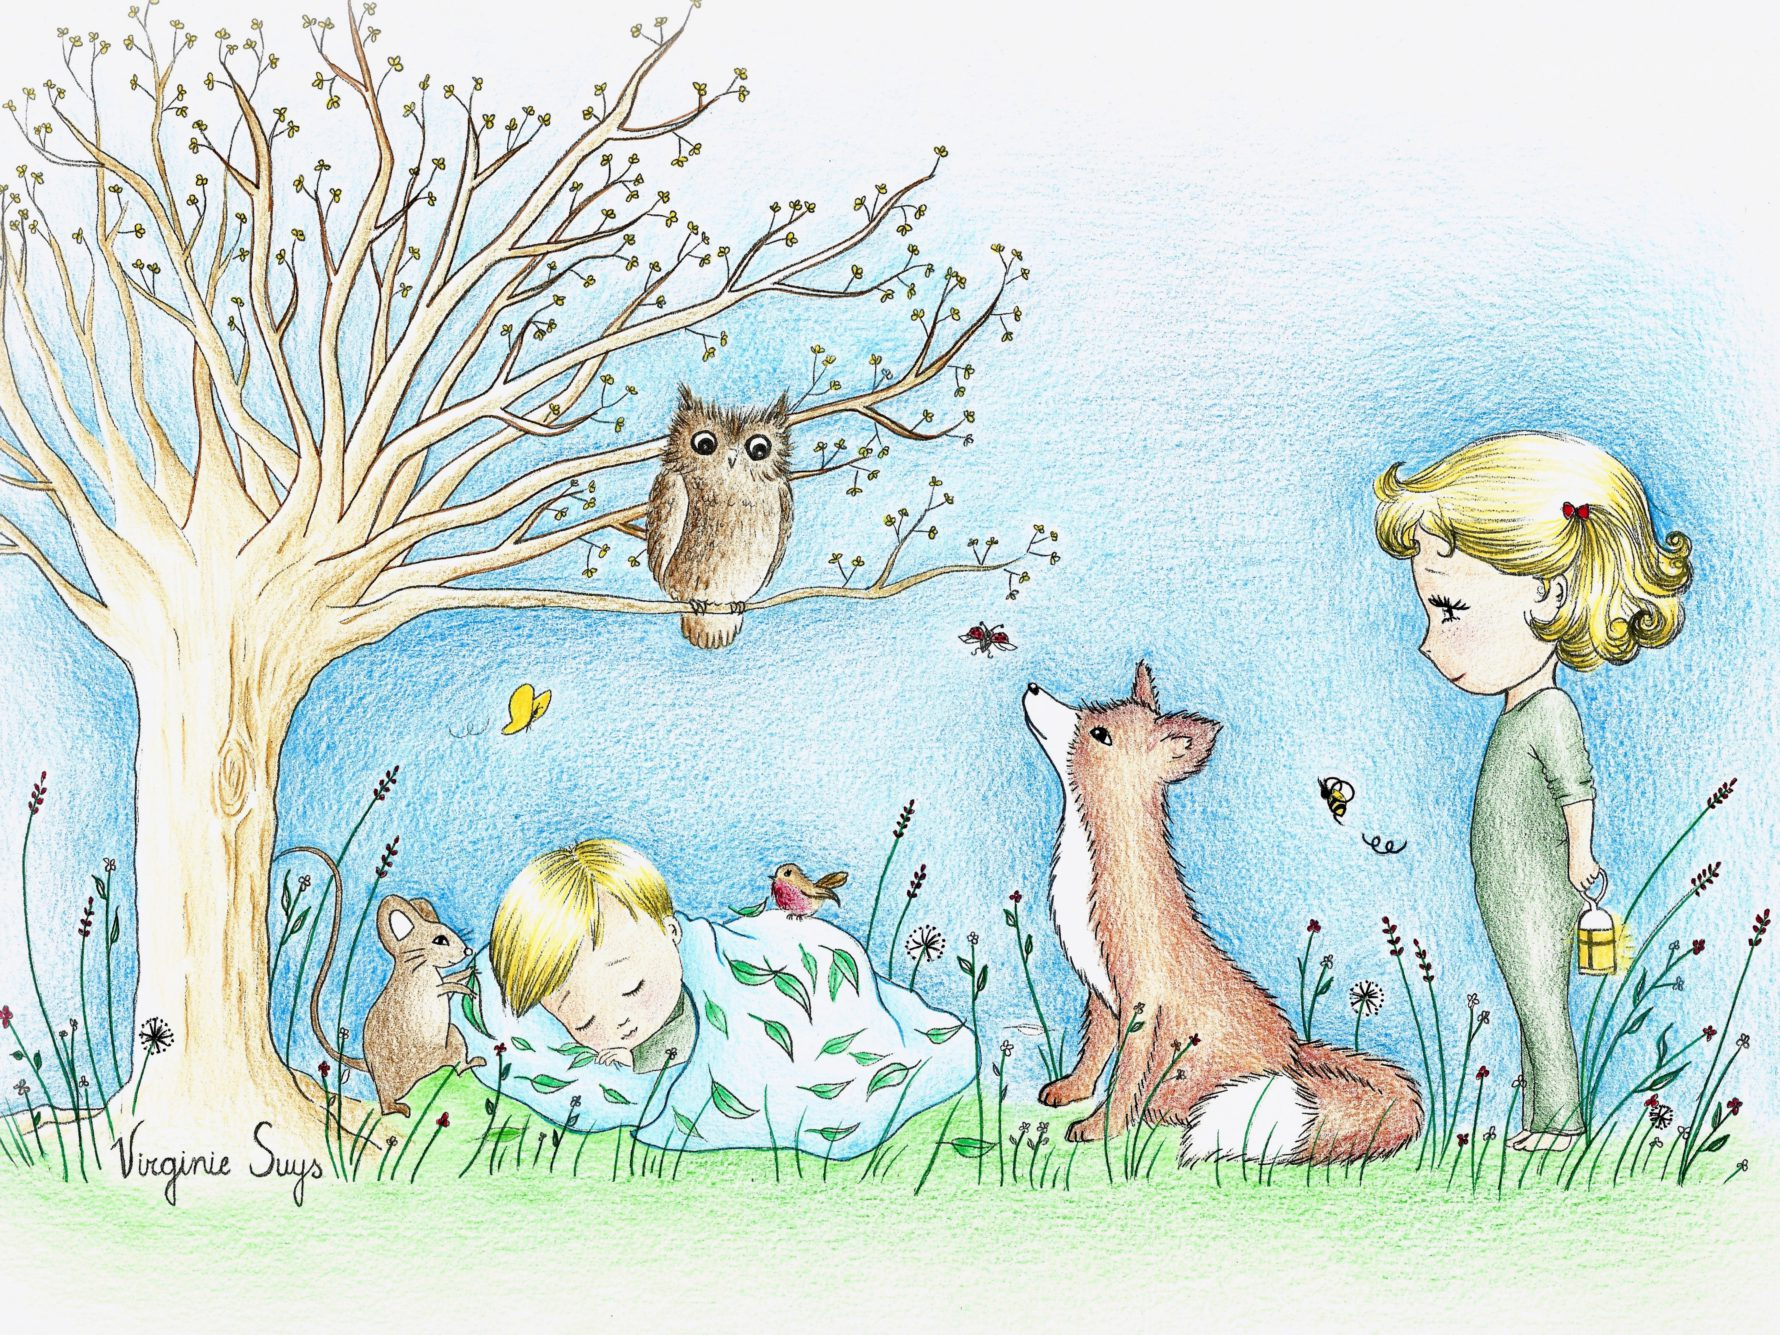 Virginie Suys Dreams in the forest in blue & green illustration